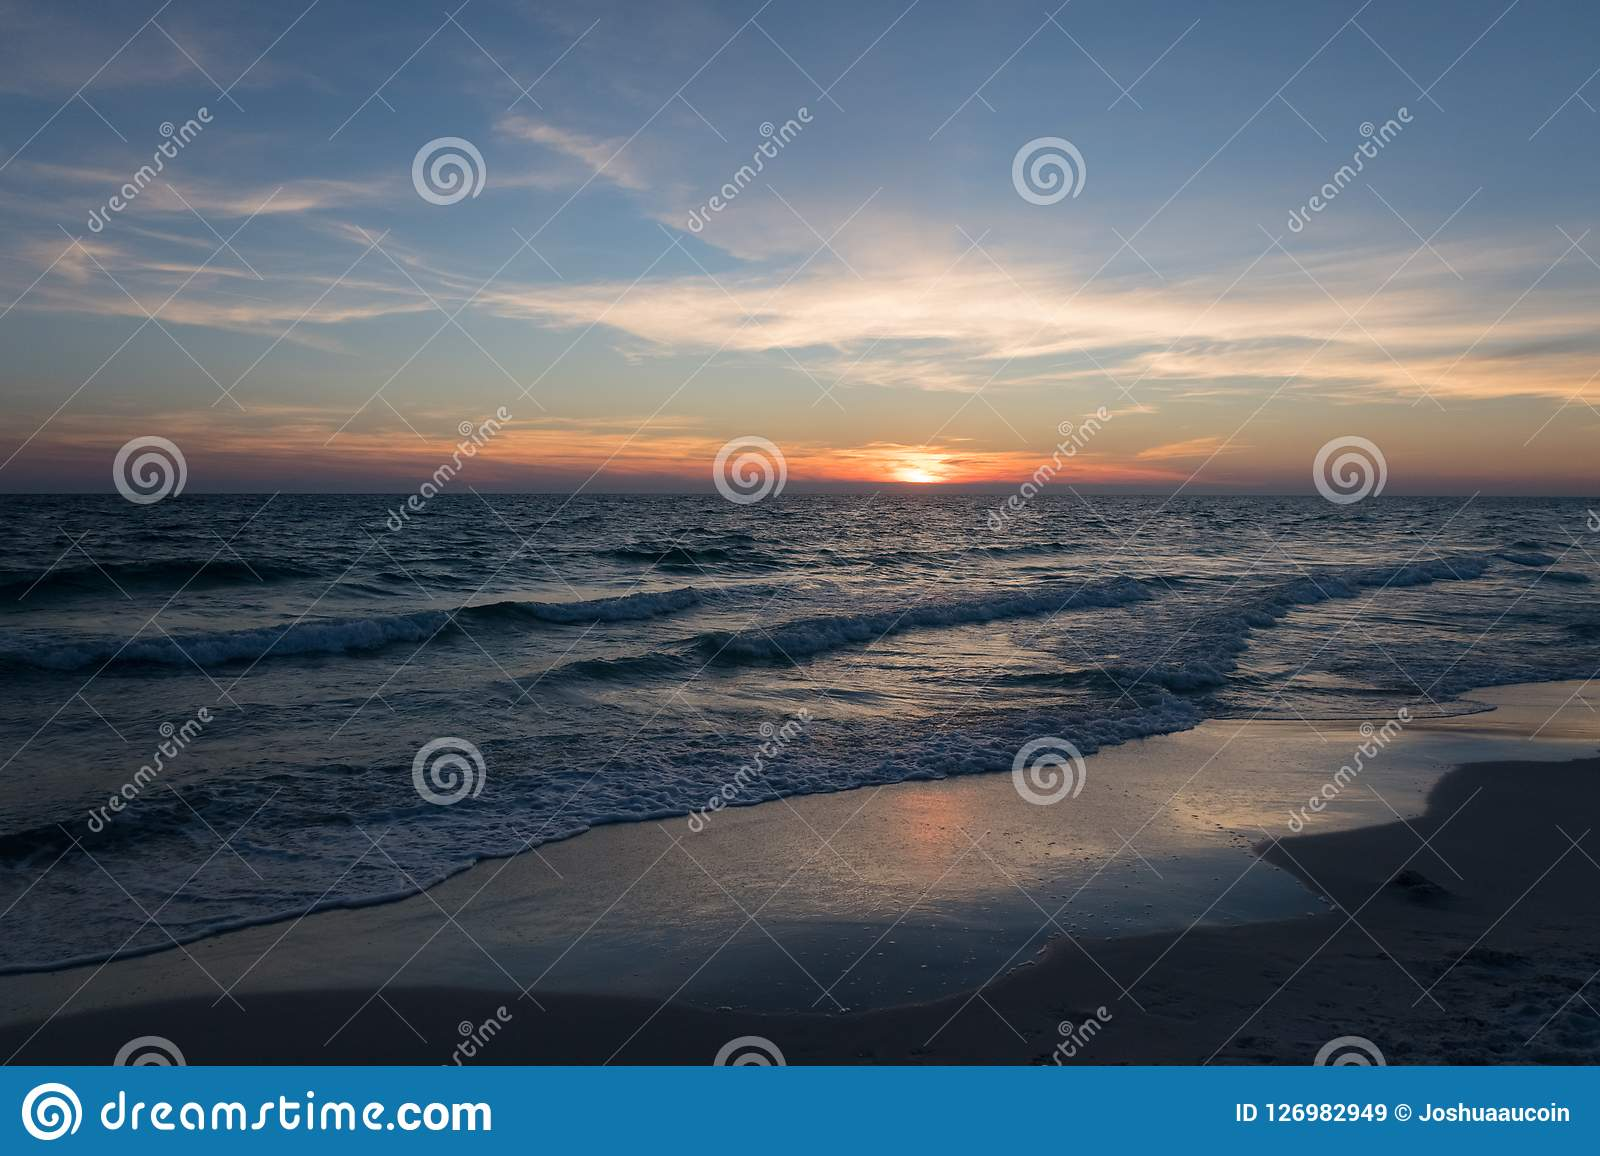 An Extravagant Sunset Over The Beach Stock Image Image Of Cruise Blue 126982949